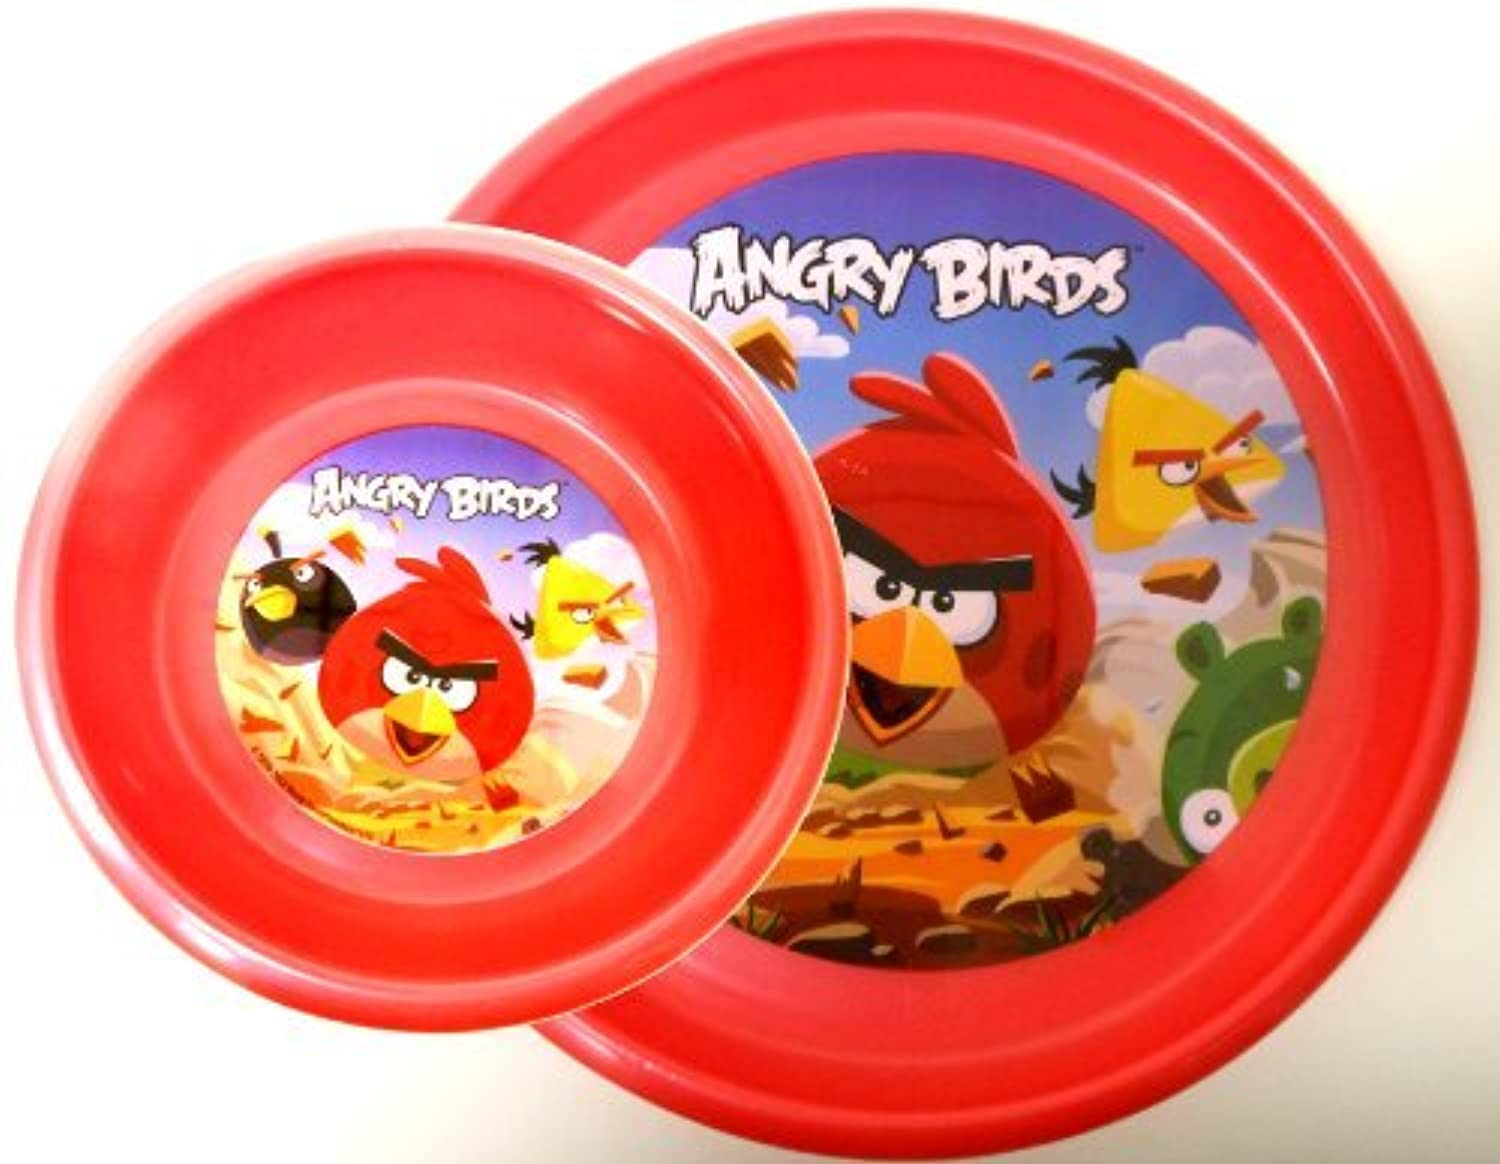 Angry Birds Plastic Plate and Bowl Set by Rovio [並行輸入品]